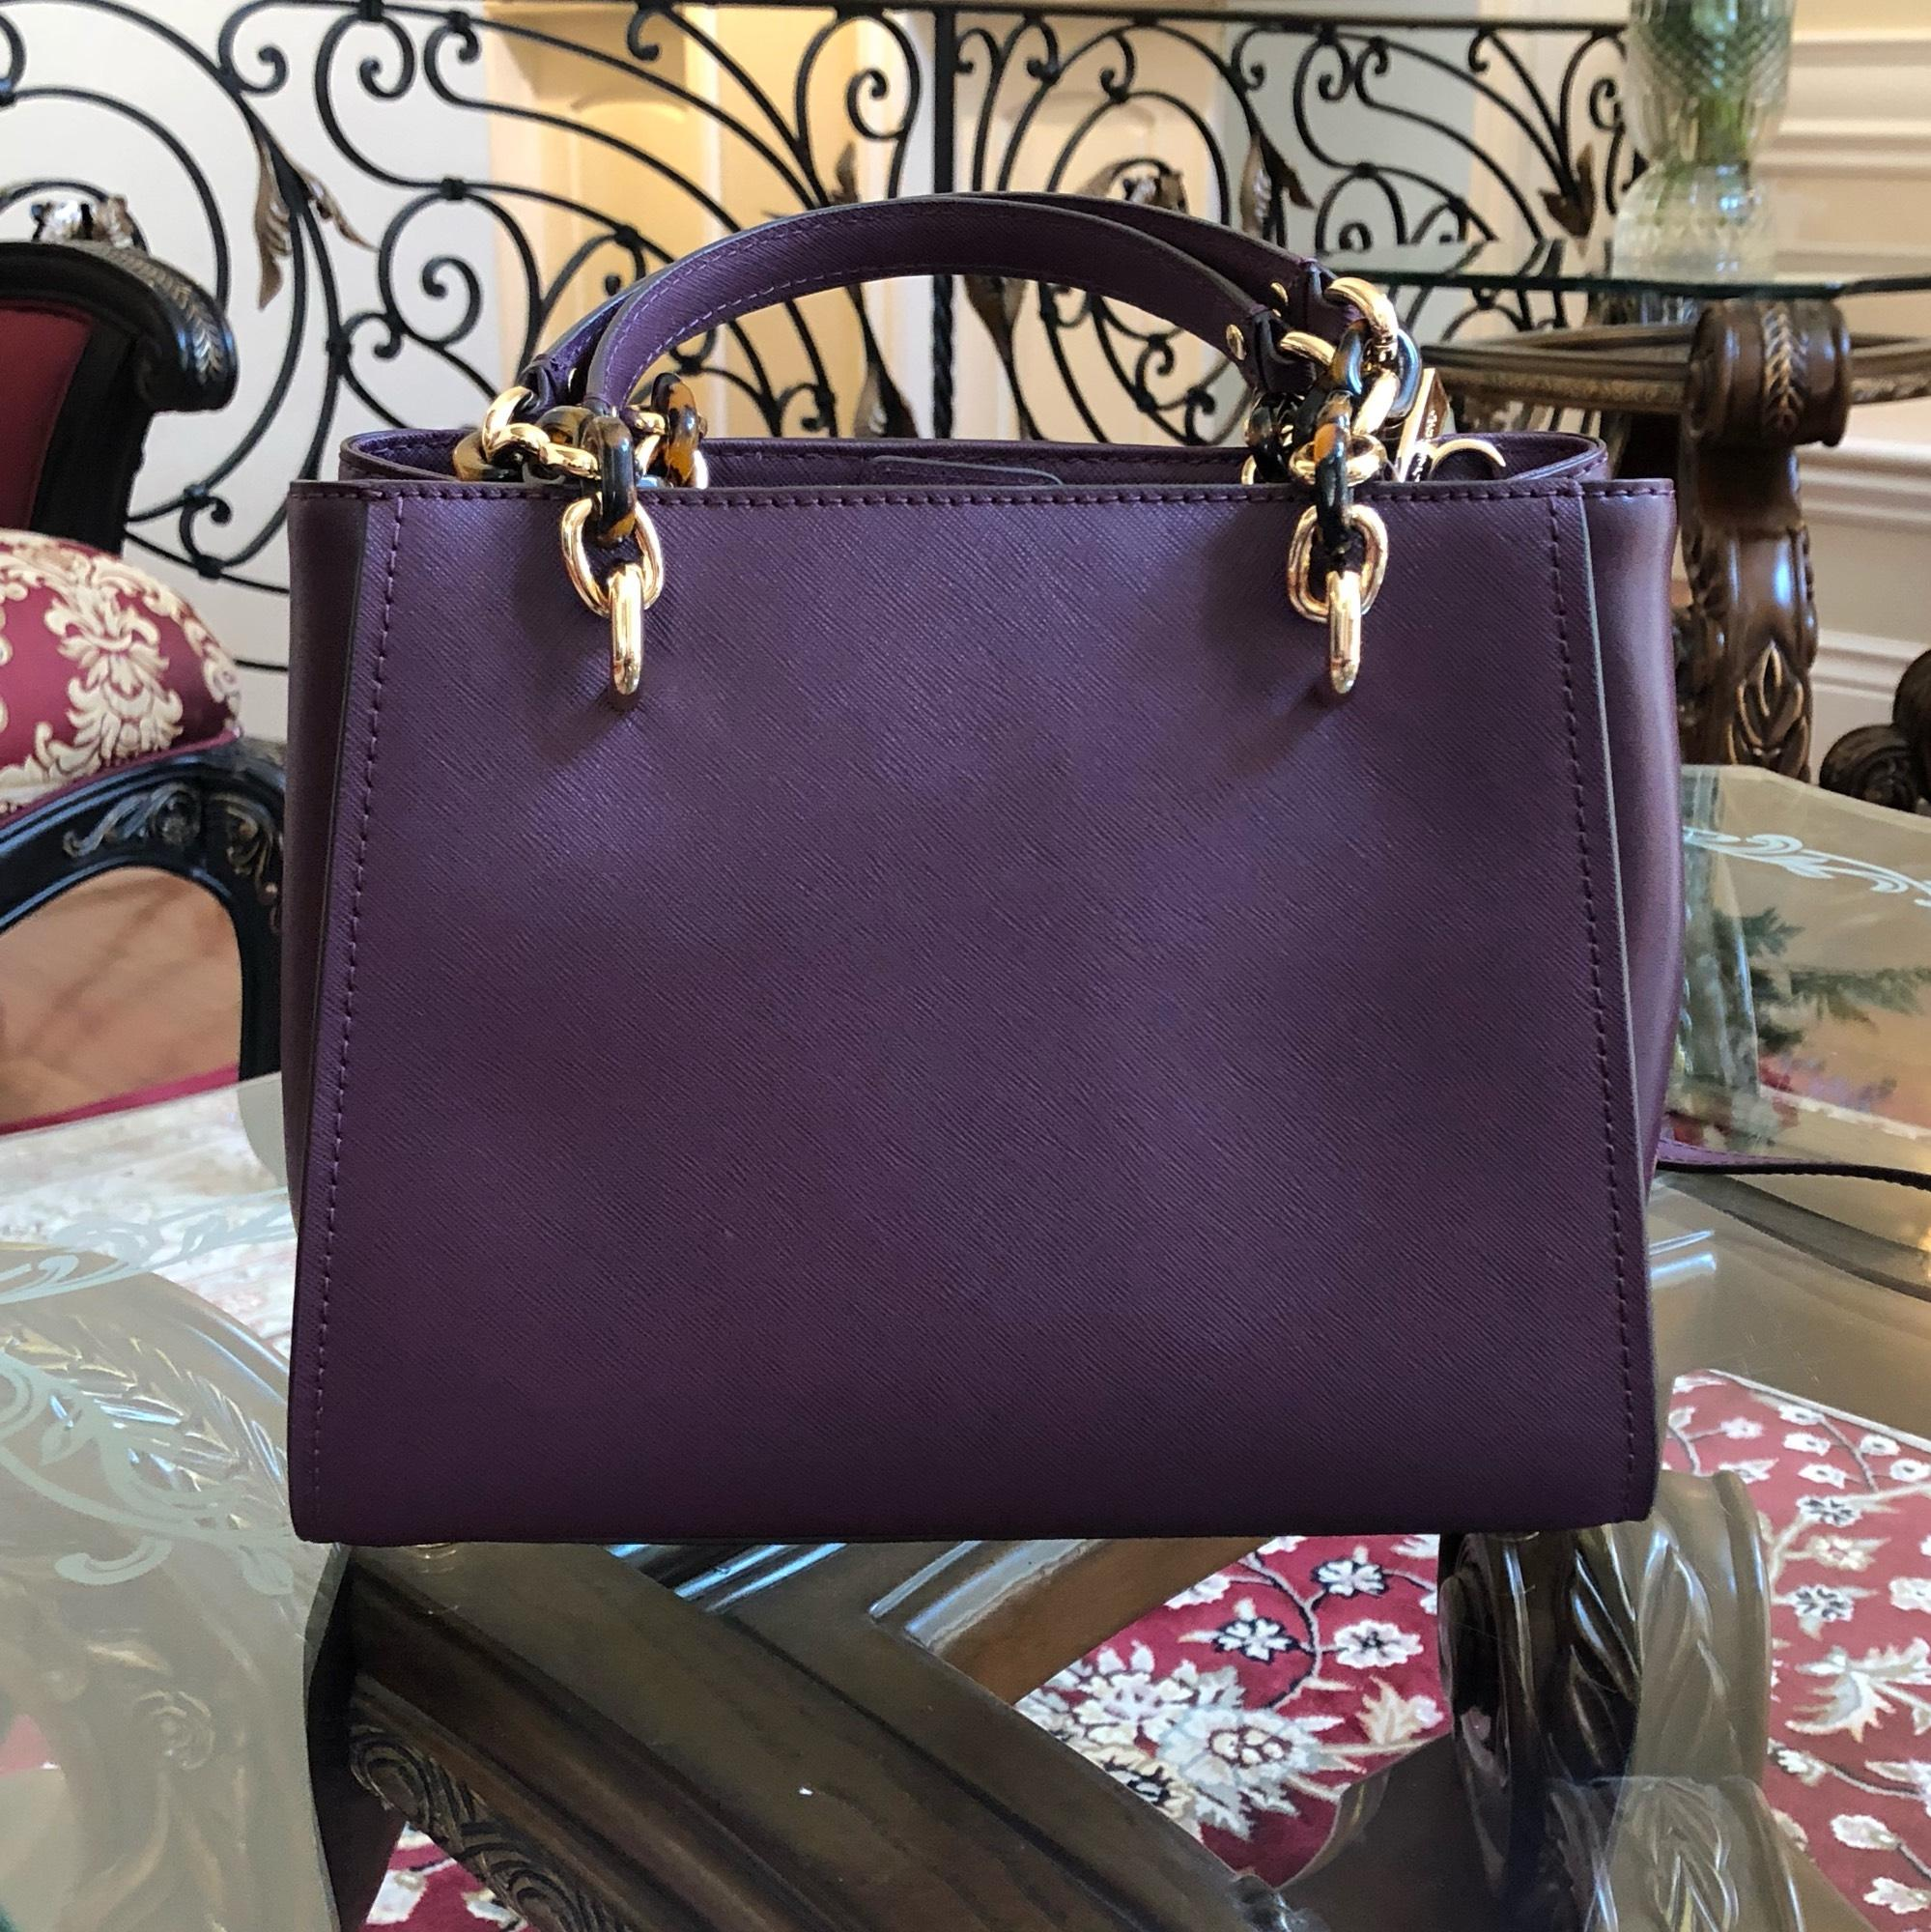 2d110bea3405 ... france michael kors medium chain md ns tote in damson. 12345678910  c4209 eafdb